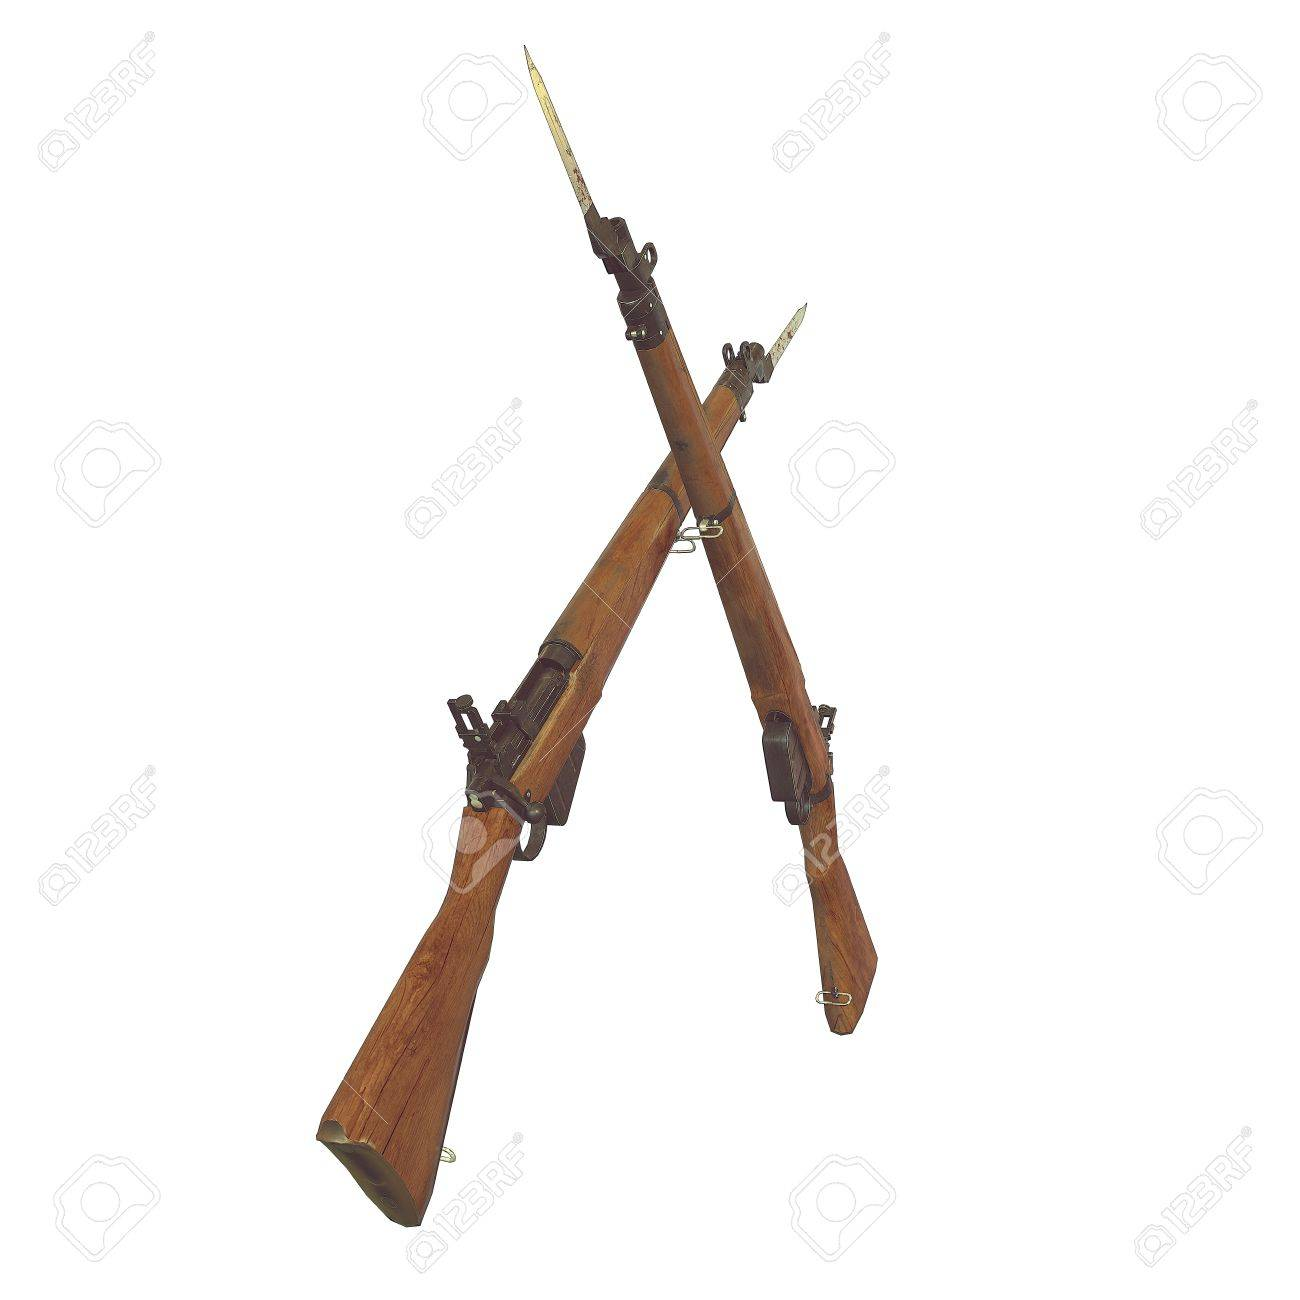 Old Rifles 3d Illustration Cross Weapons Icon Guns Cracked